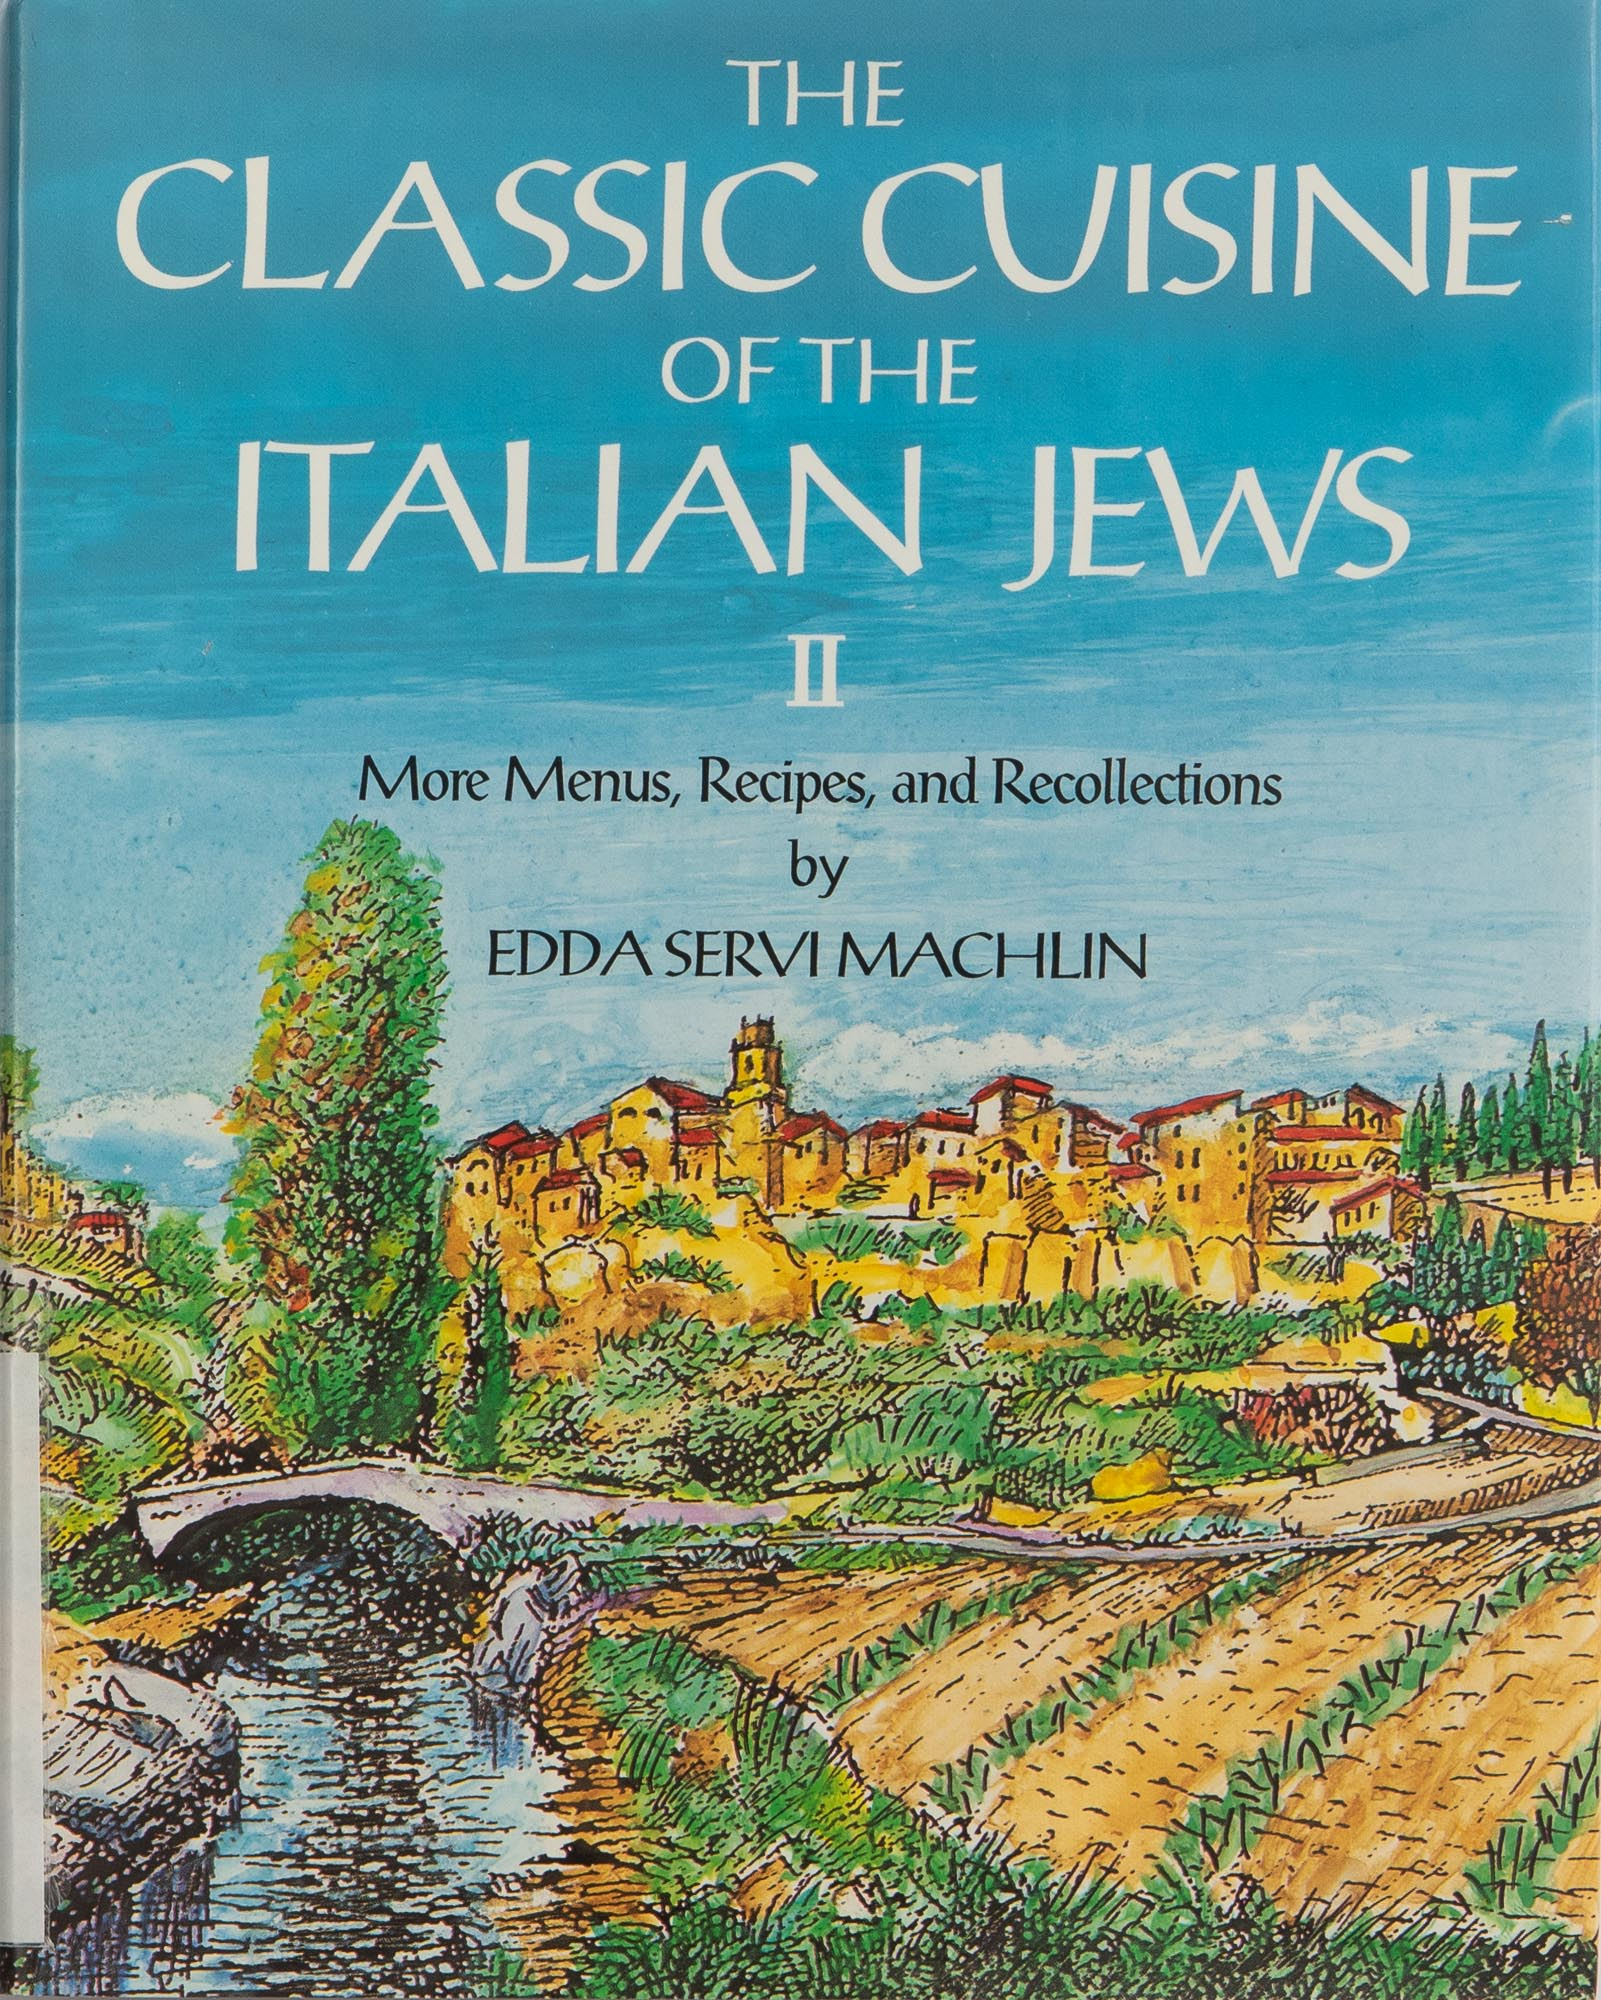 The cover of the cookbook Classic Cuisine of the Italian Jews